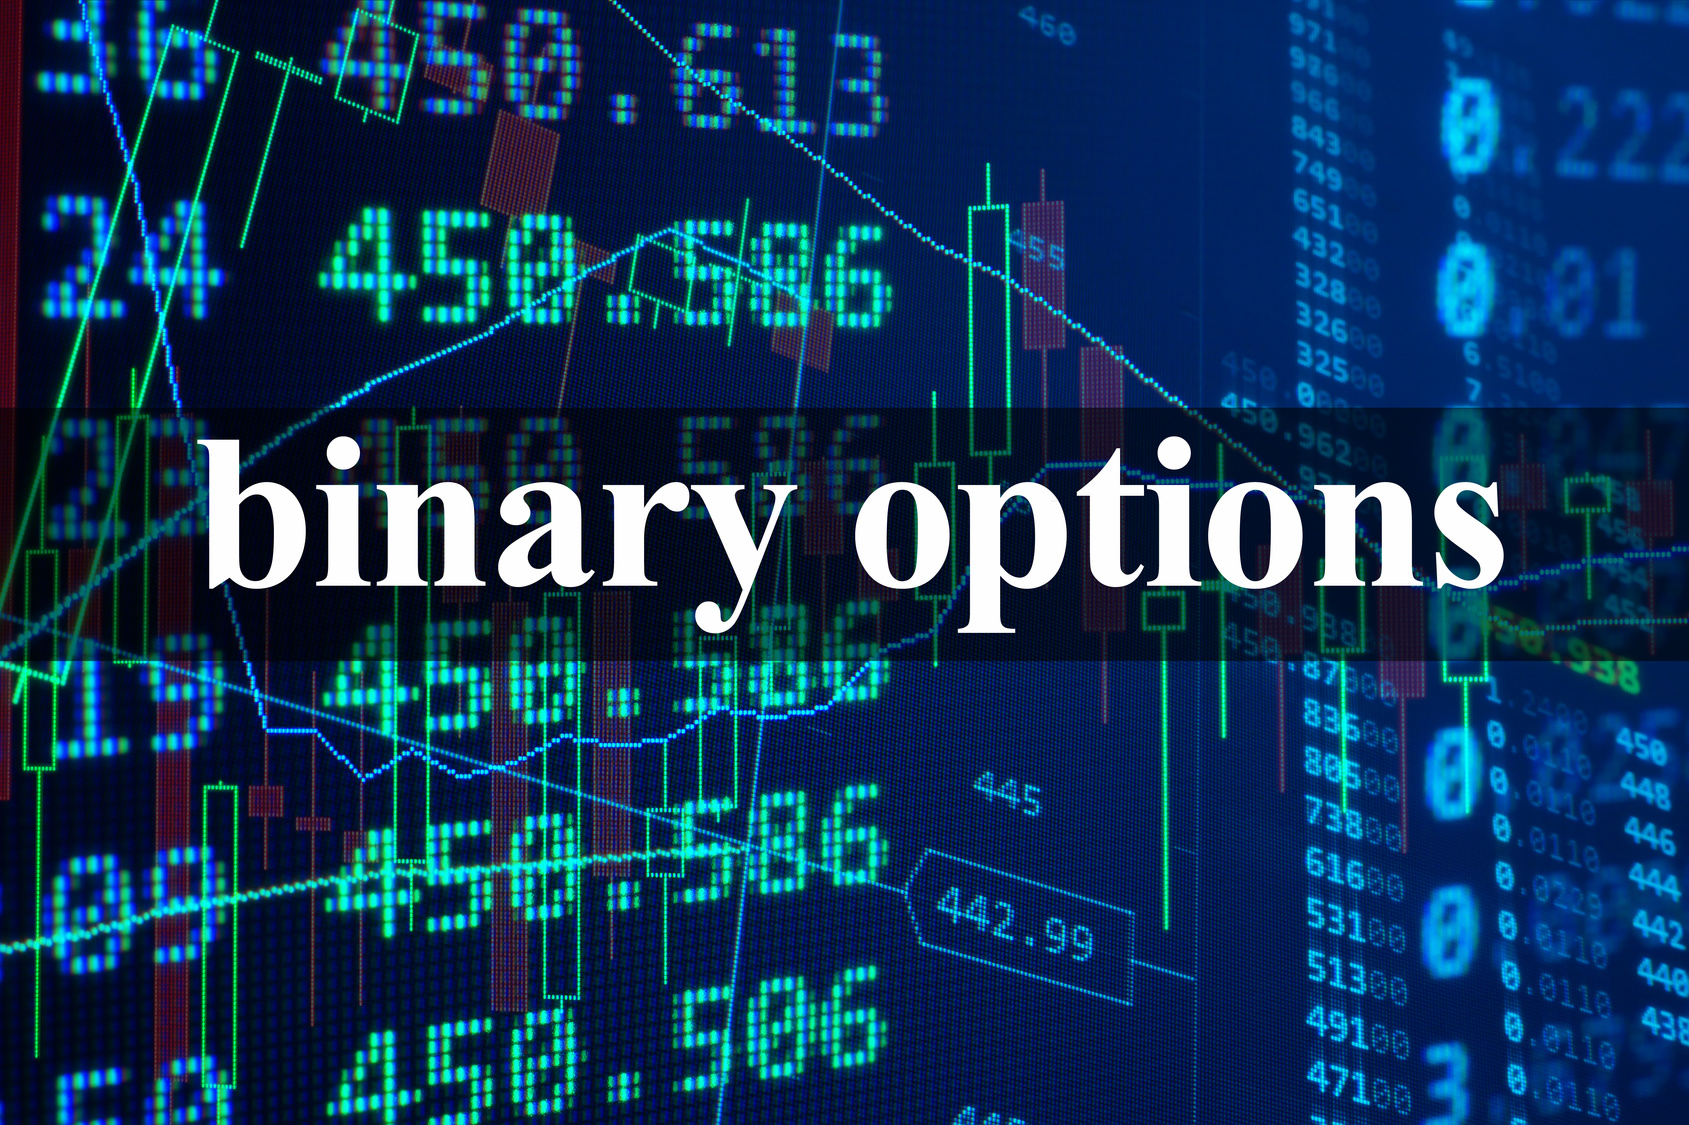 What is binary options market